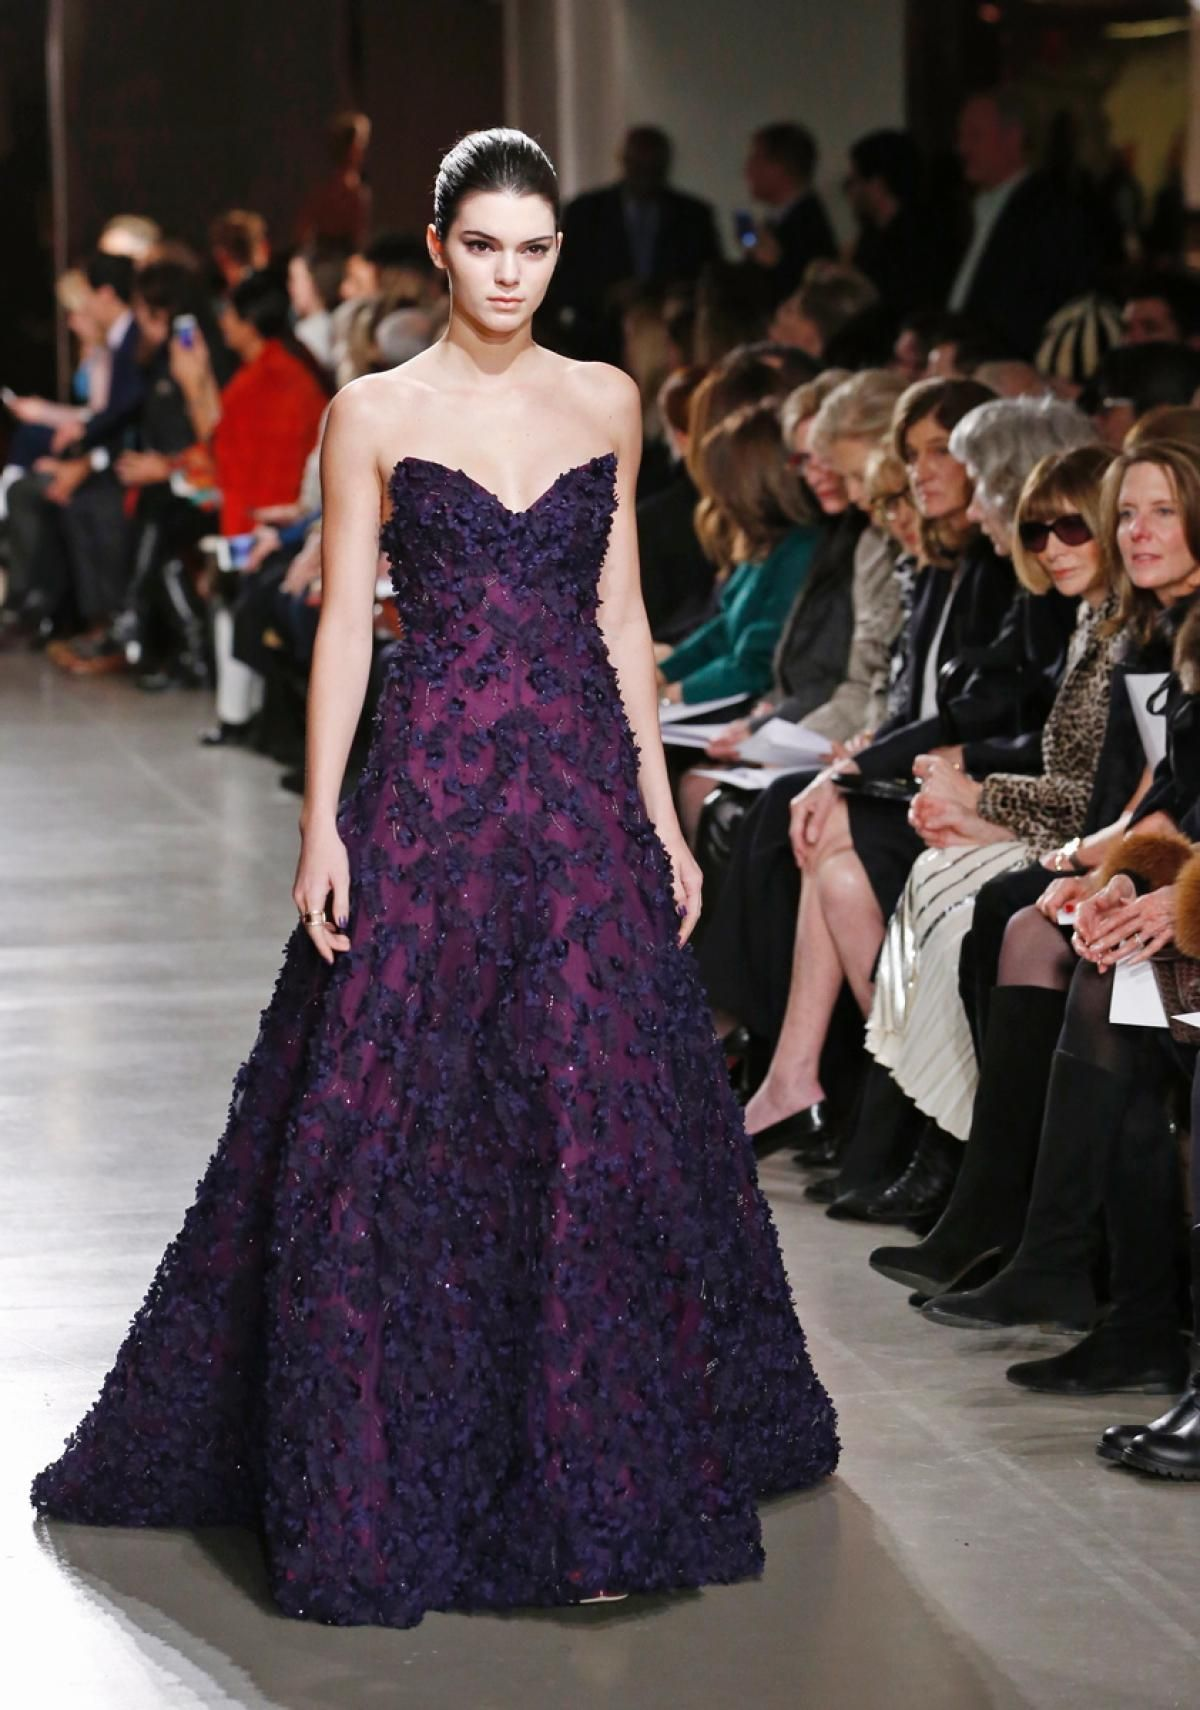 Oscar de la Renta Fall 2018 Ready-to-Wear Collection - Vogue